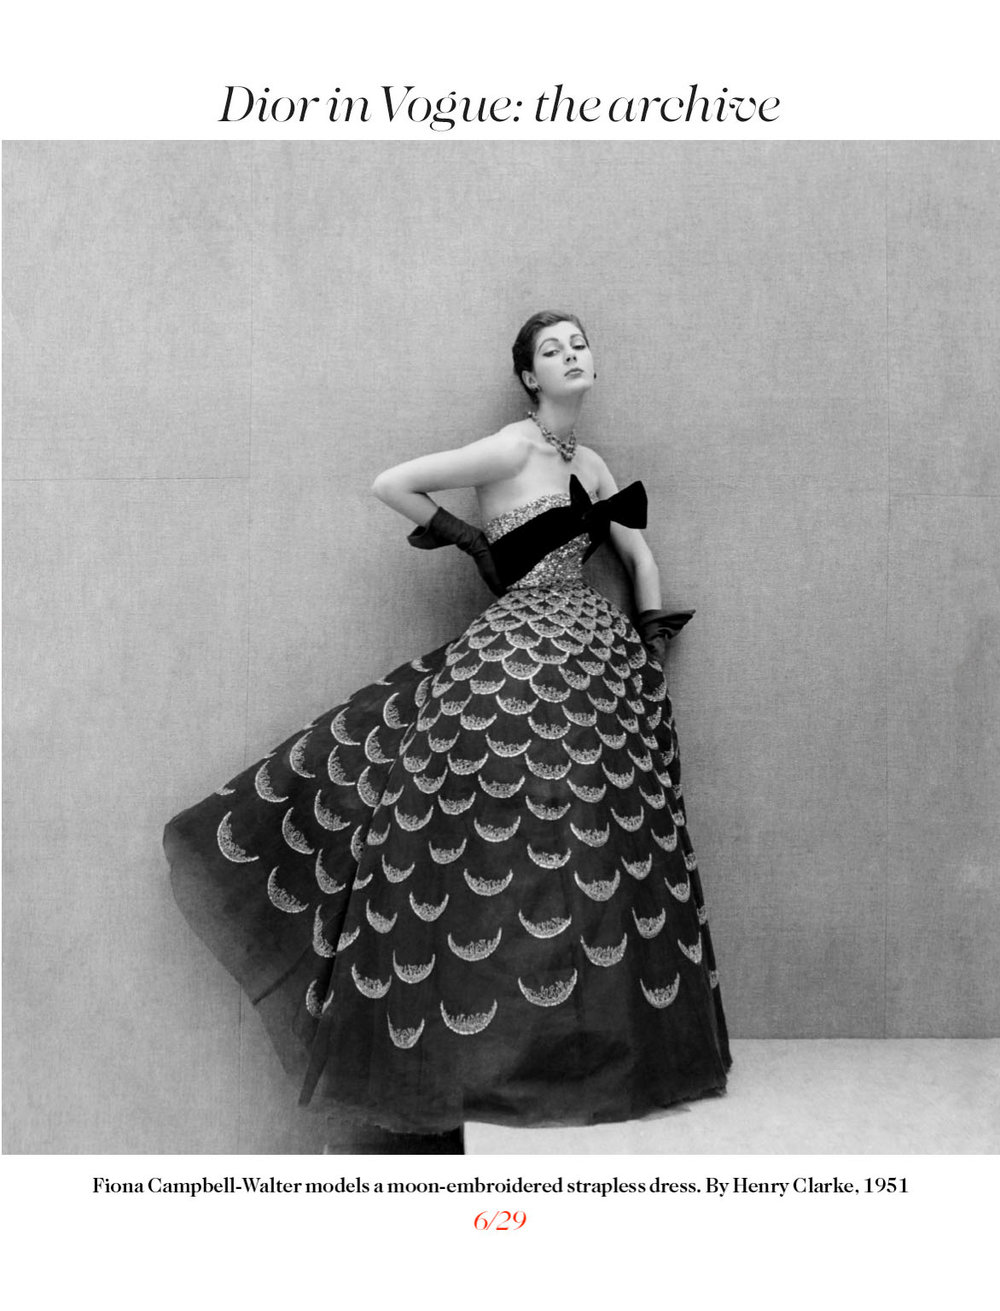 Dior in Vogue 1951 - now an archived couture gown